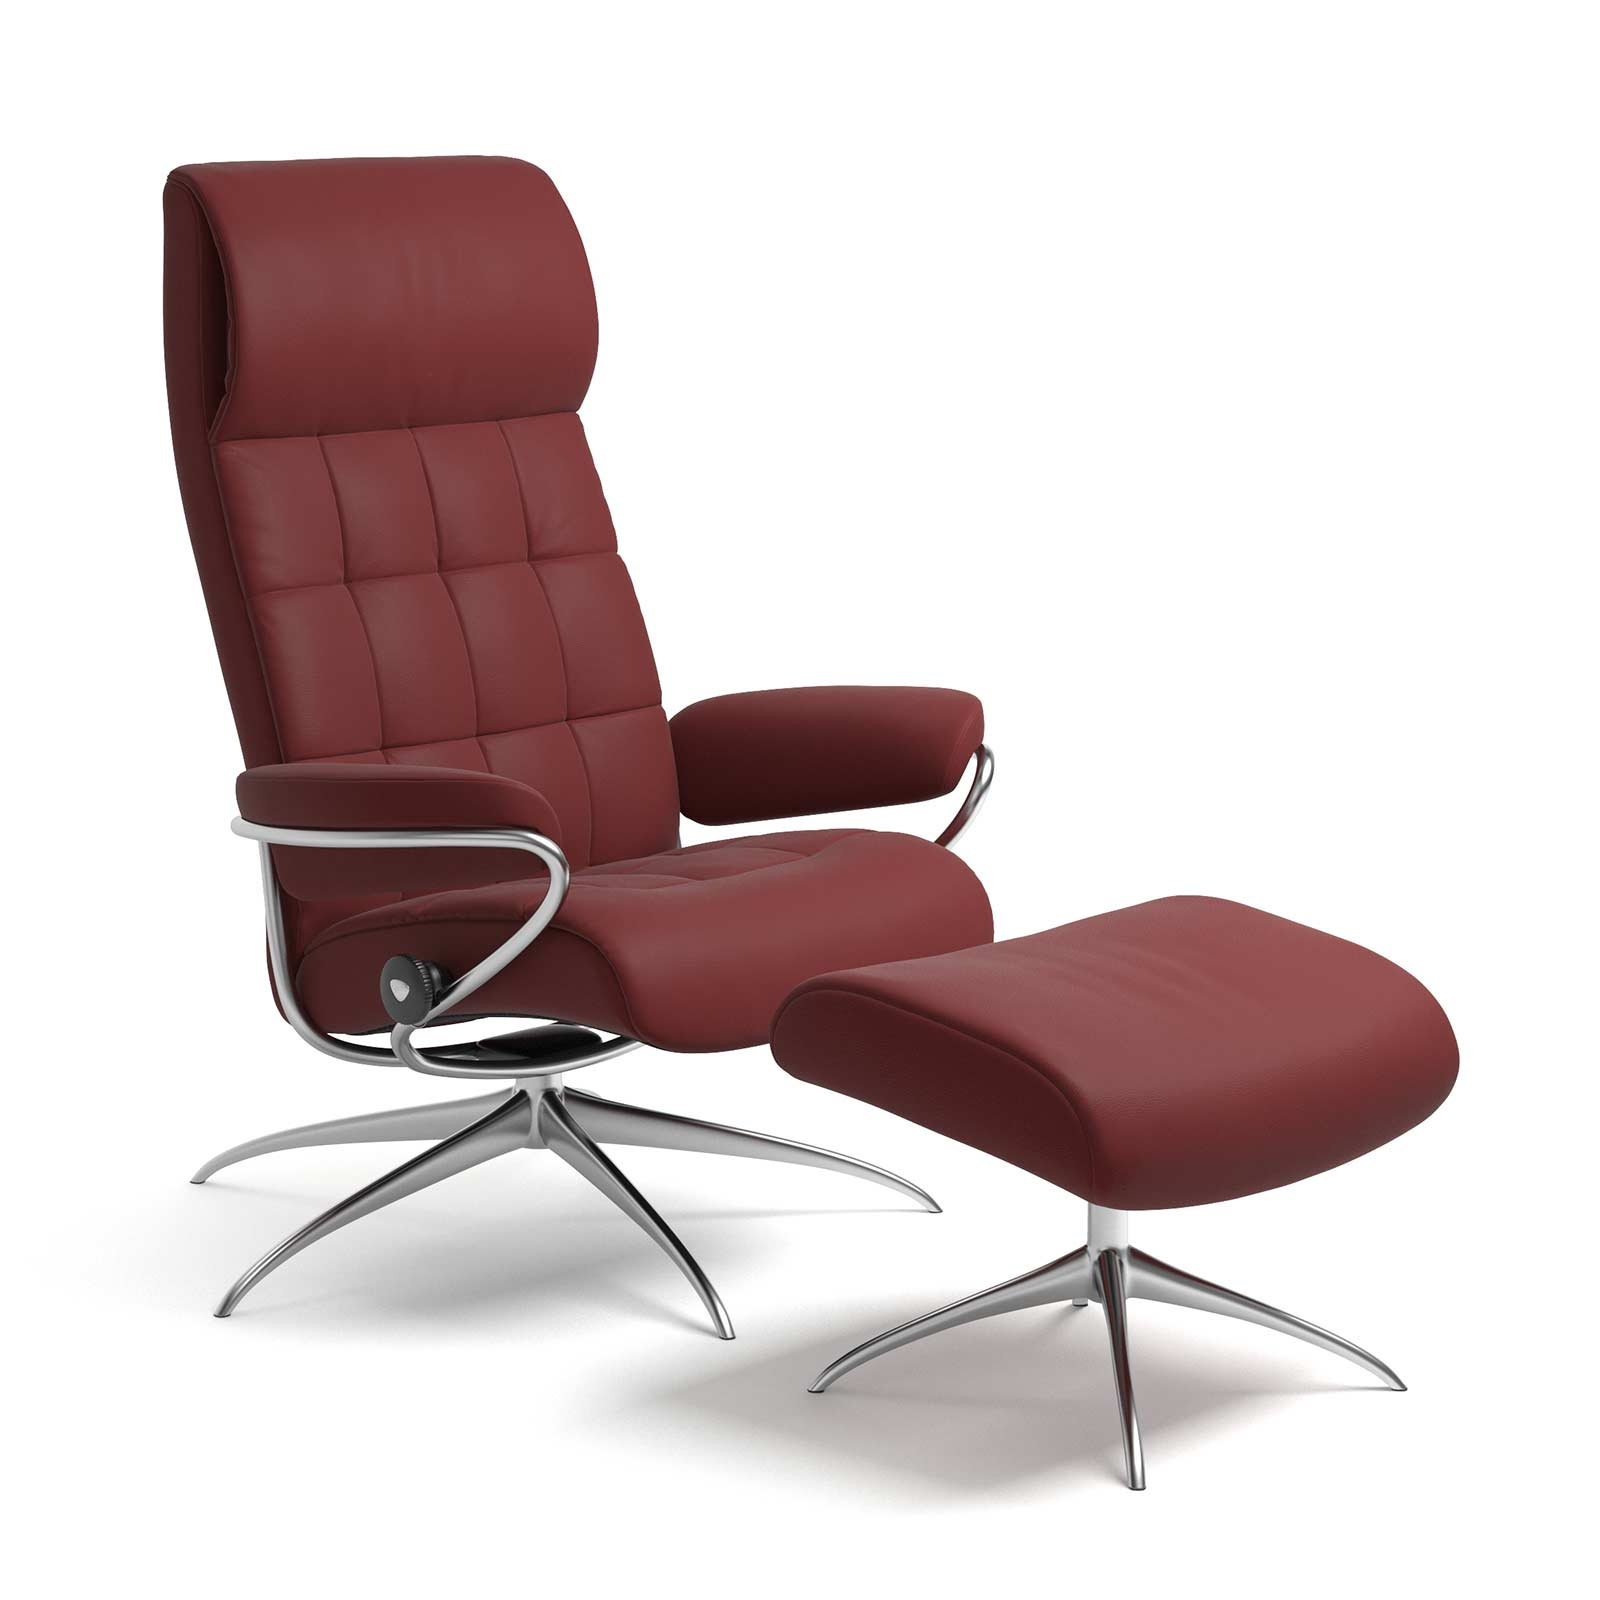 Stressless City Sessel Preis Stressless Sessel London Hohe Lehne Paloma Cherry